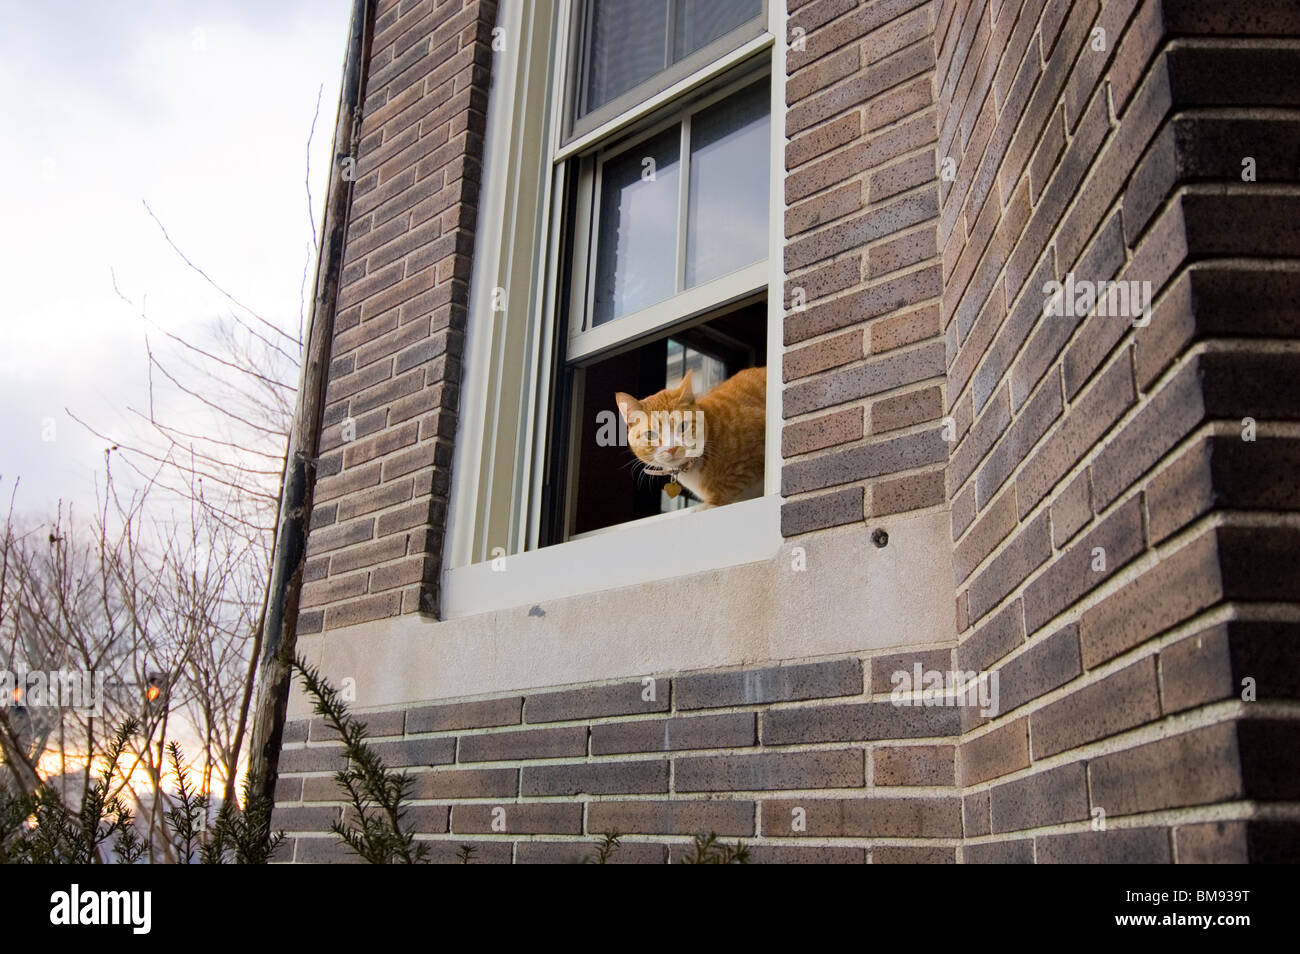 Curious cat sticks its head out the window - Stock Image